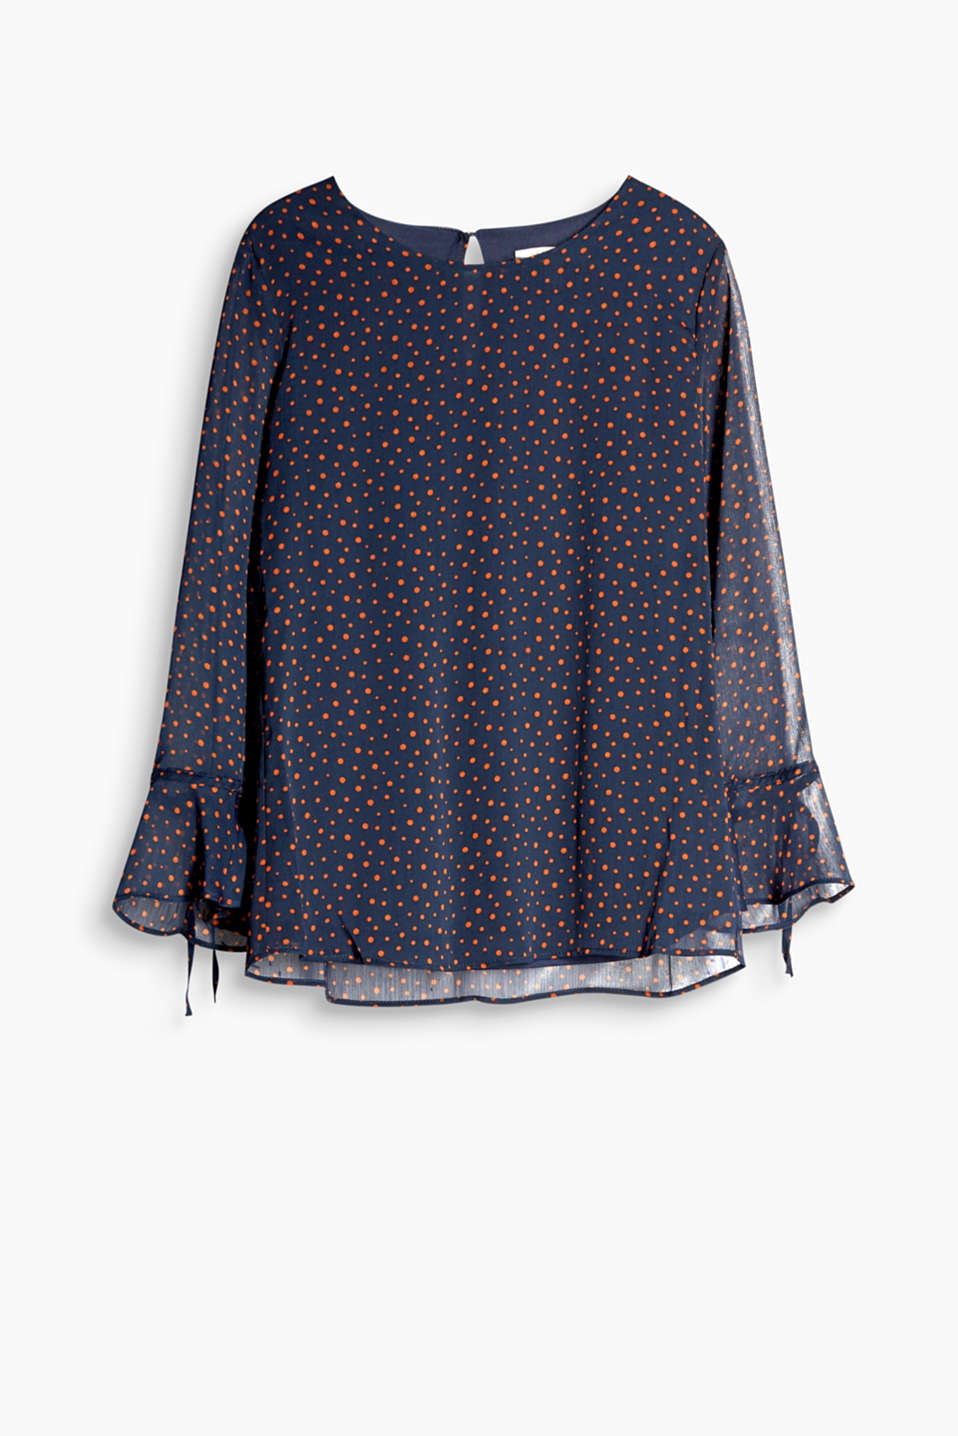 Charming polka dot blouse in chiffon with flounce sleeves